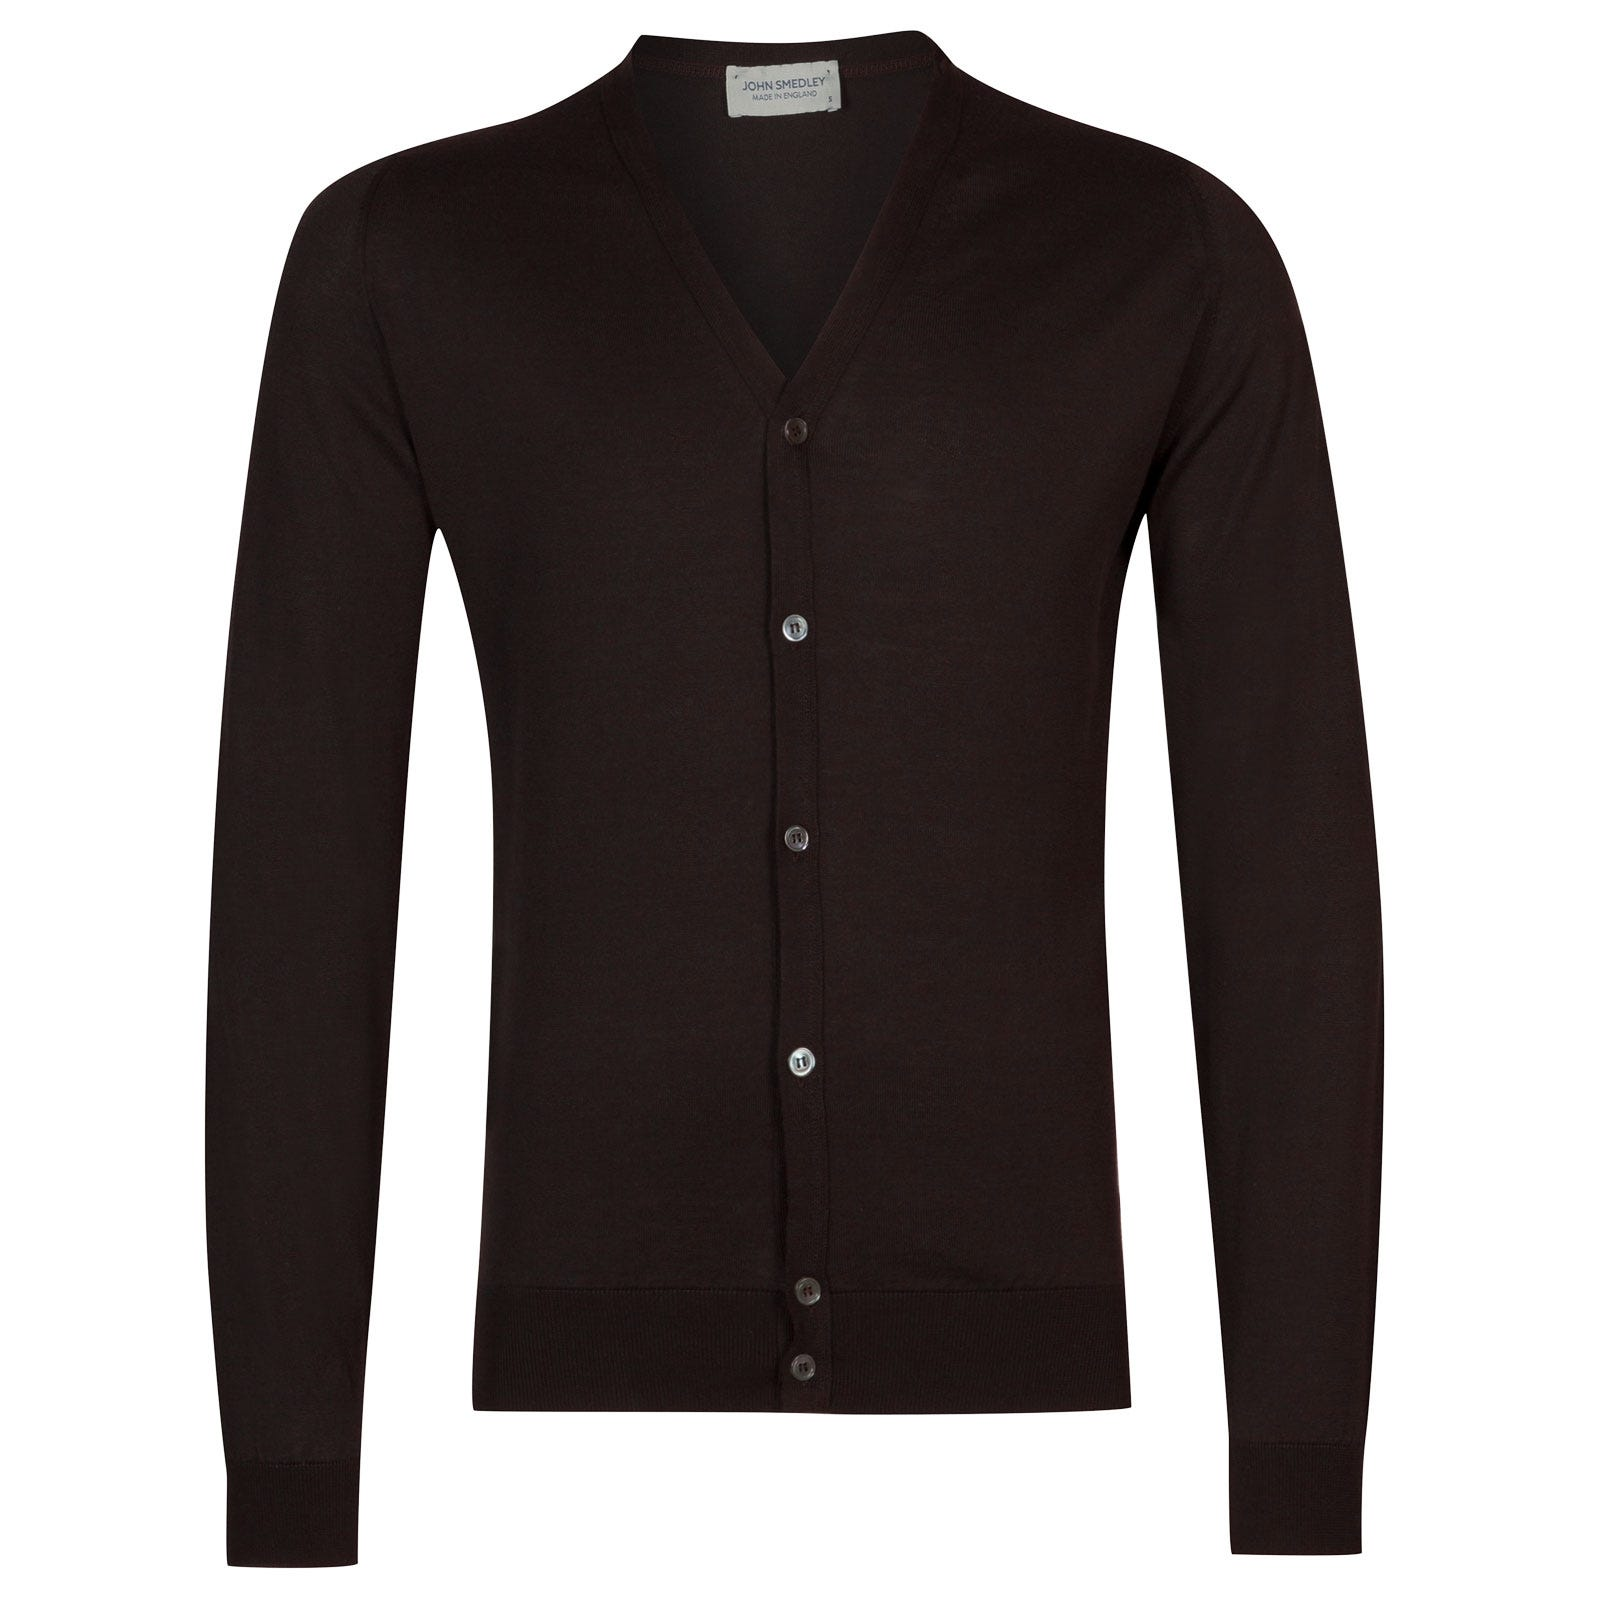 John Smedley Whitchurch in Dark Leather Cardigan-LGE